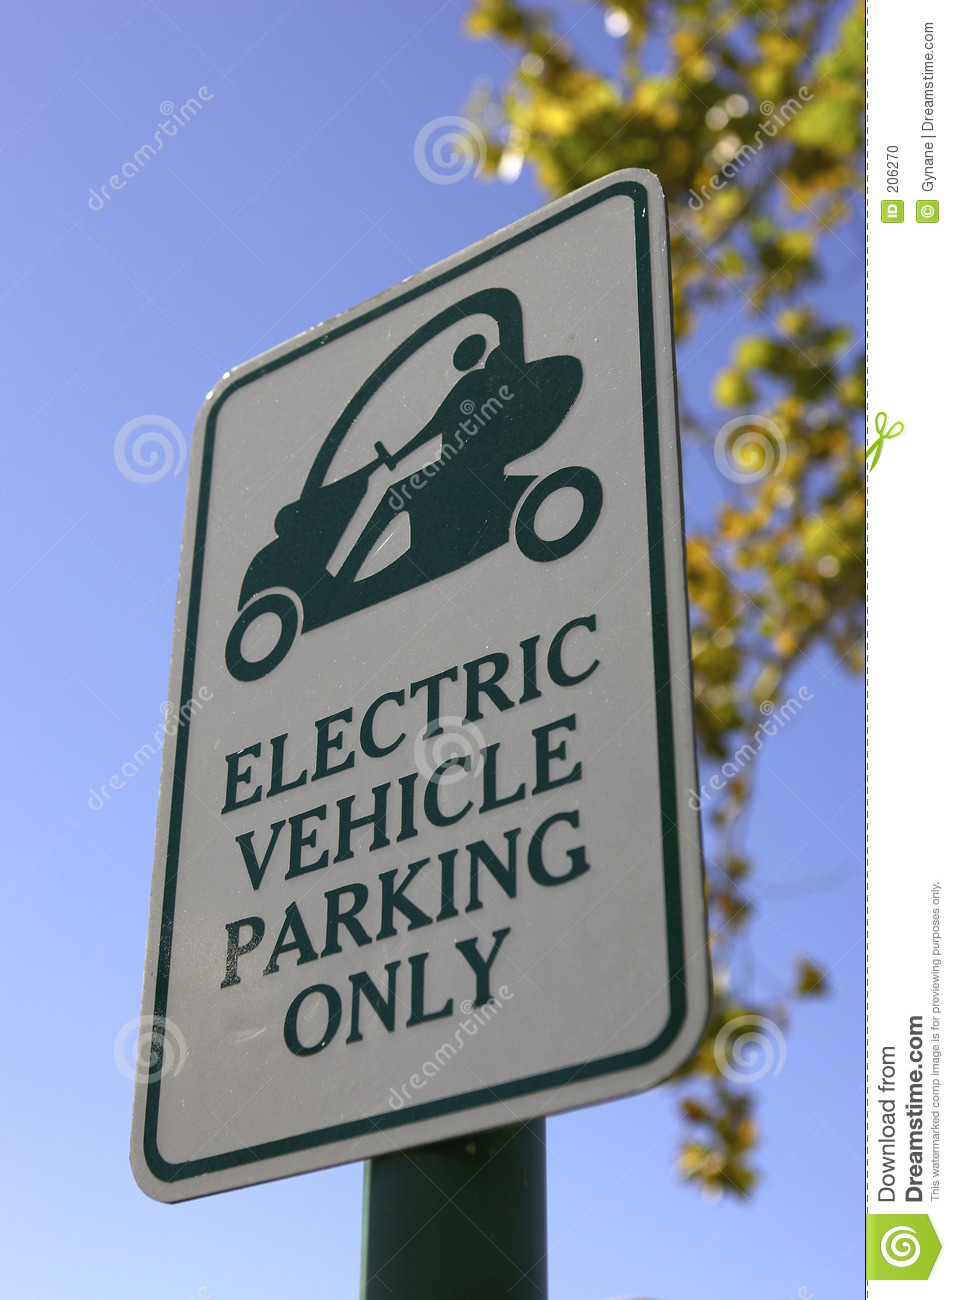 Priority parking sign for electric vehicles only in celebration florida united states usa